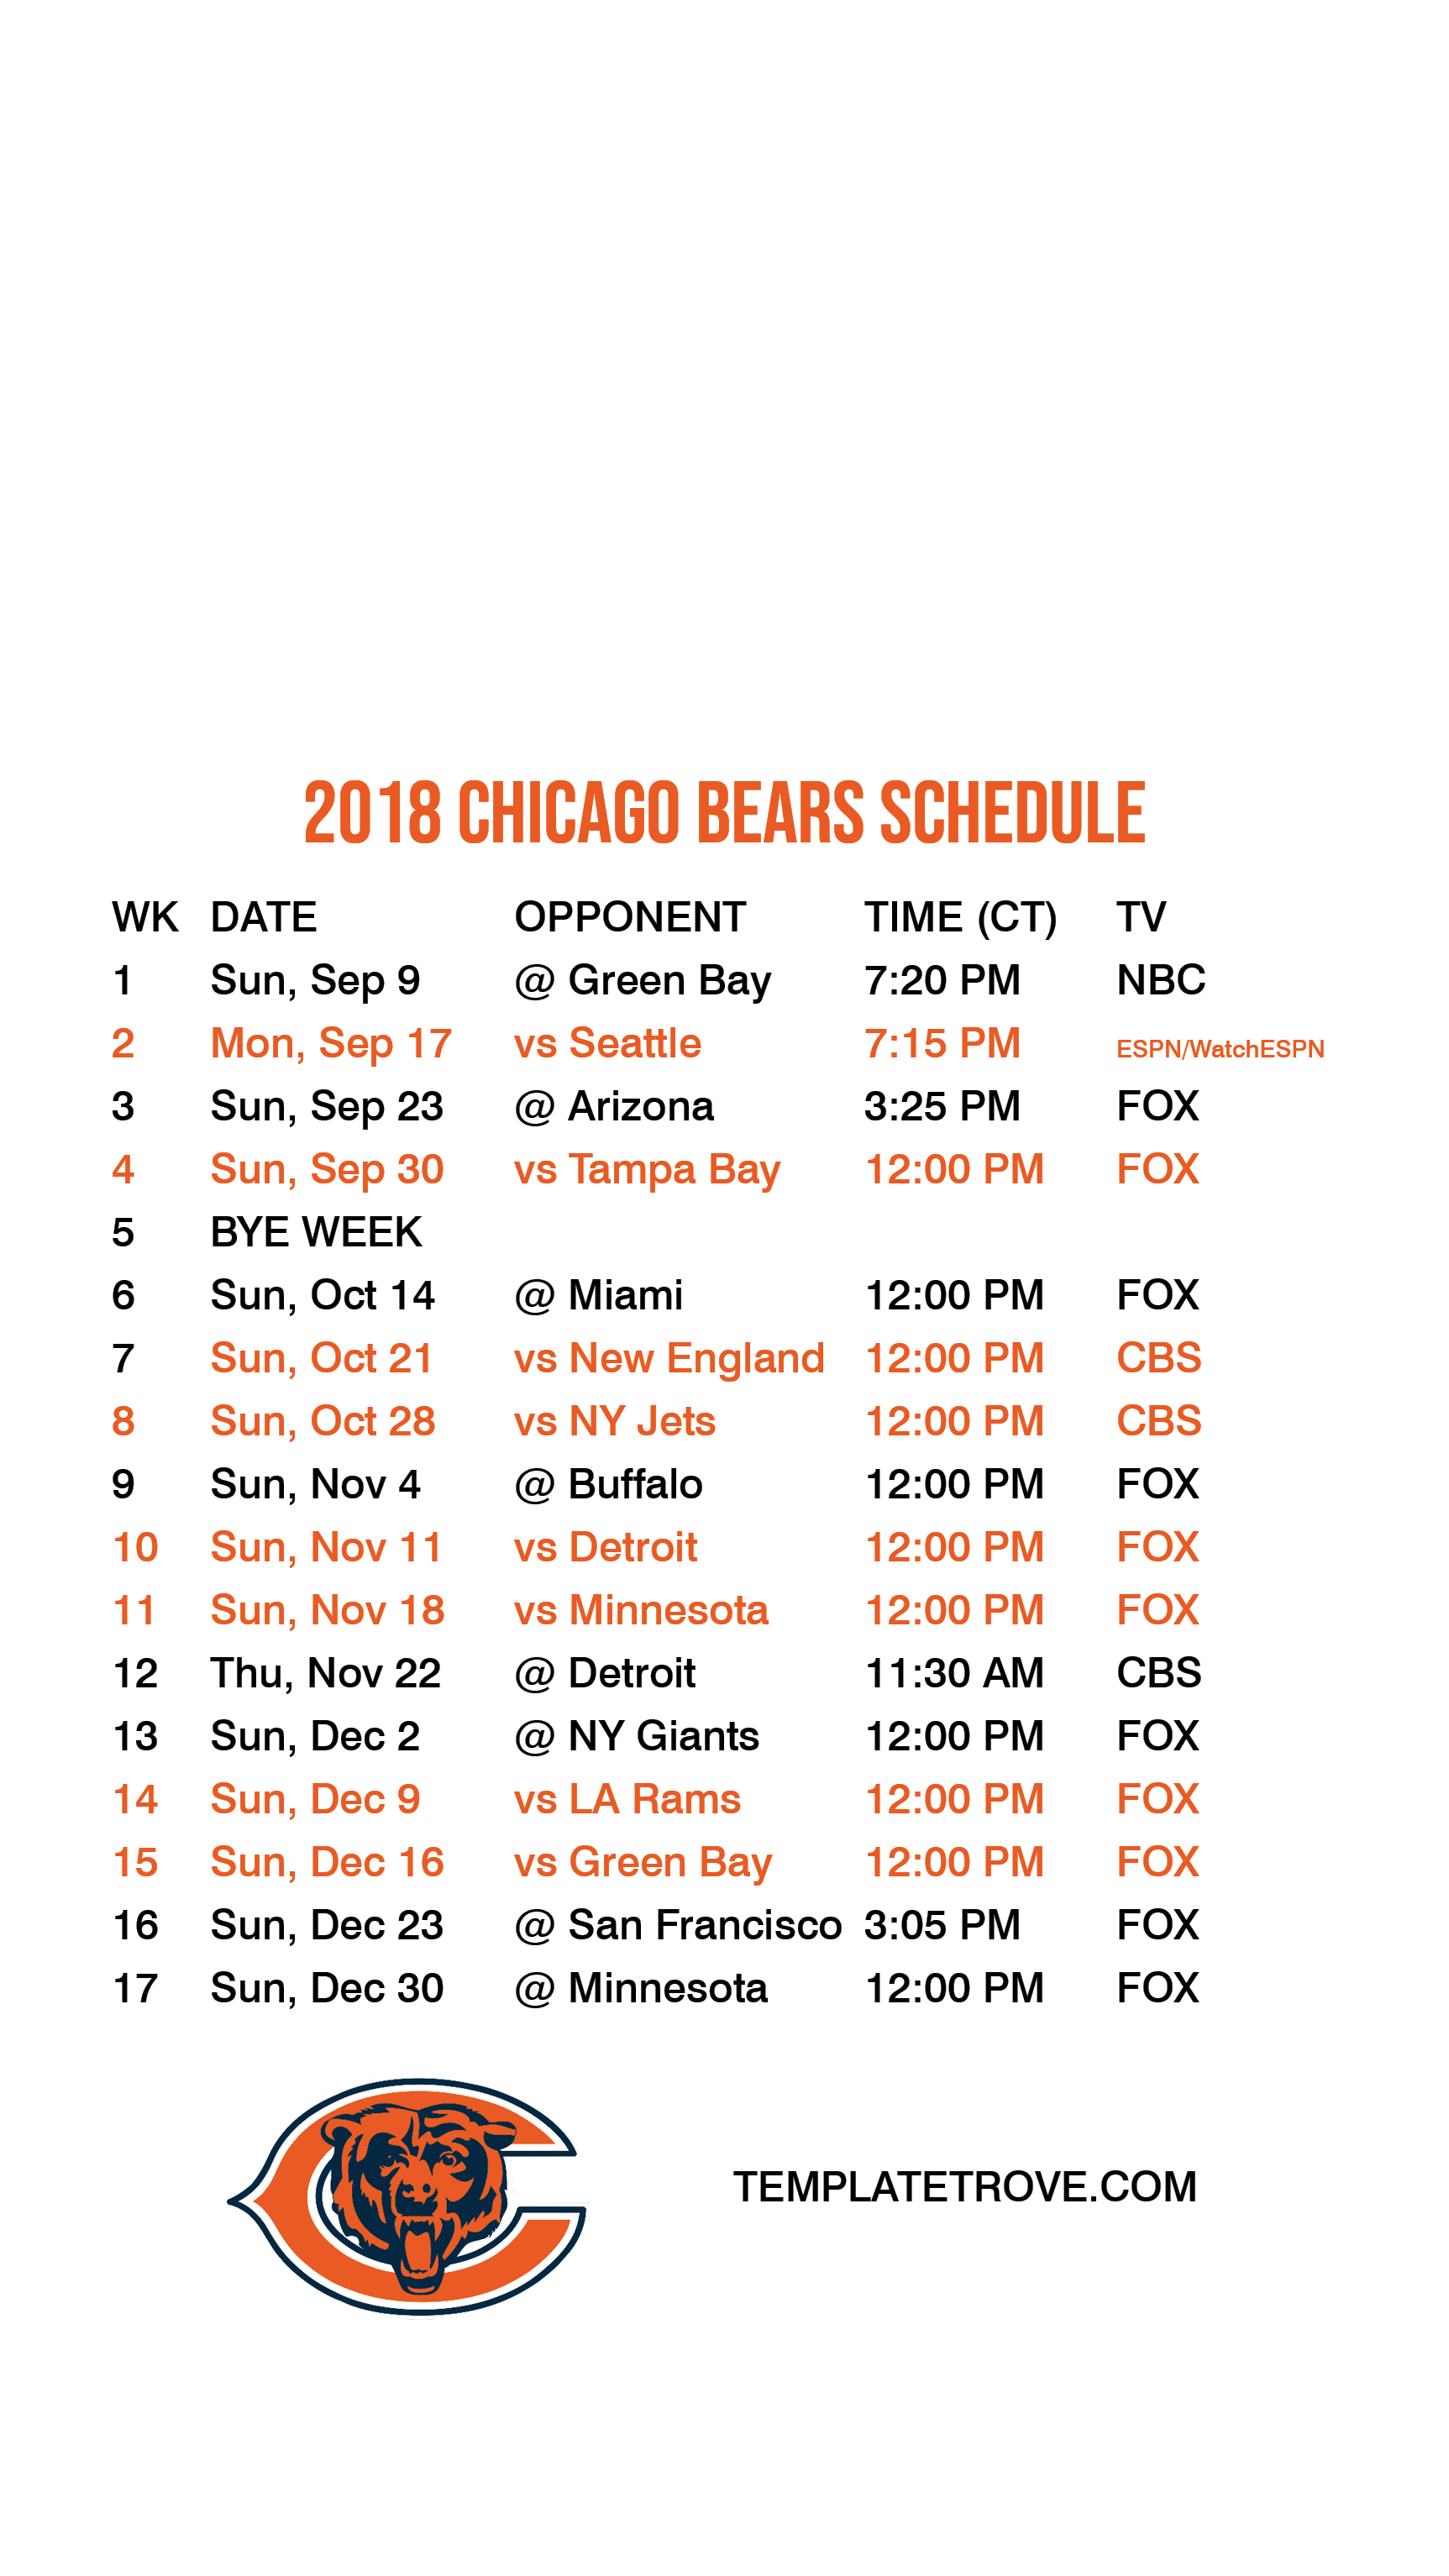 photograph regarding Printable Bears Schedule referred to as 2018-2019 Chicago Bears Lock Display Program for apple iphone 6-7